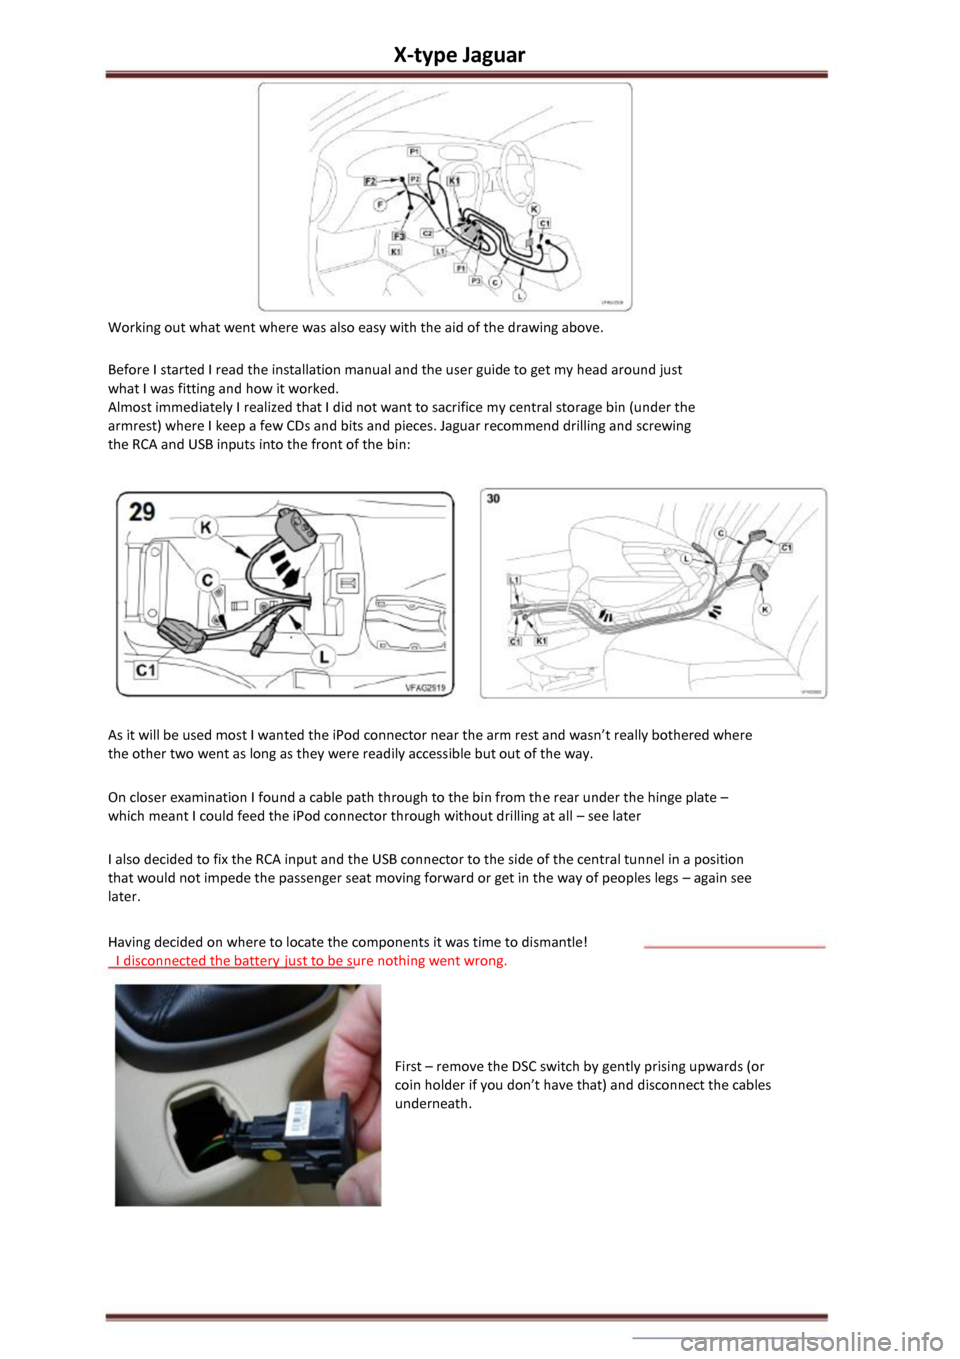 JAGUAR X TYPE 2002 1.G Owners Manual X-type Jaguar  Working out what went where was also easy with the aid of the drawing above.  Before I started I read the installation manual and the user guide to get my head around just  what I was f